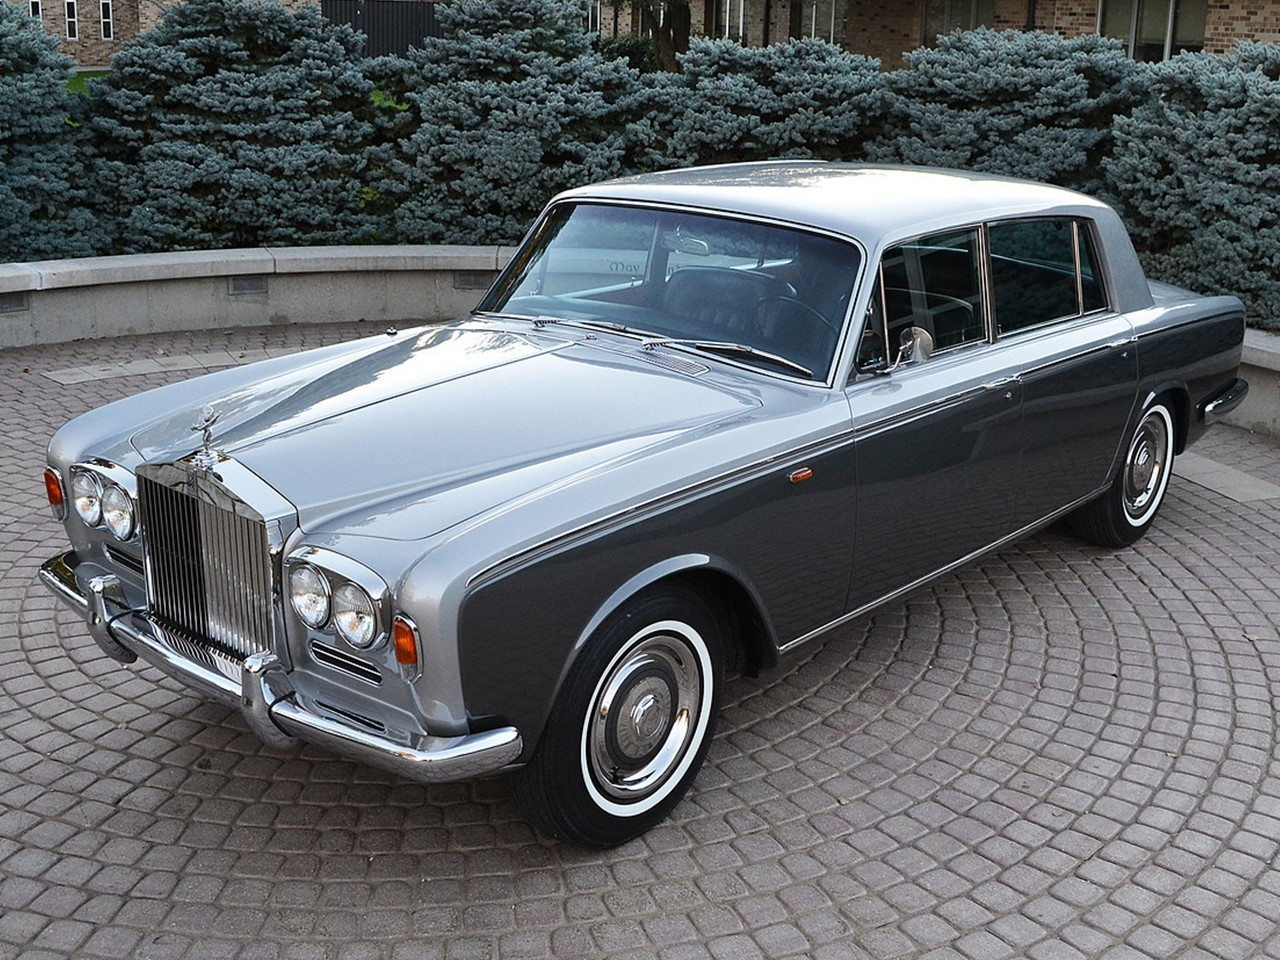 1971 Rolls Royce Silver Shadow Lwb Formal Limousine